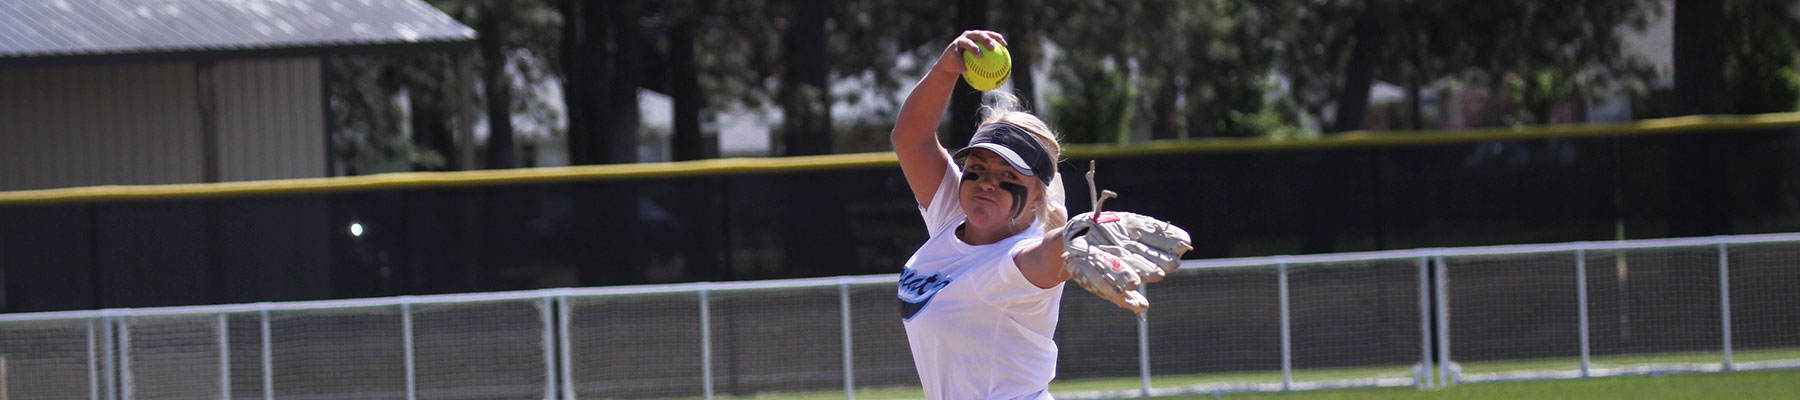 Softball player pitching windup